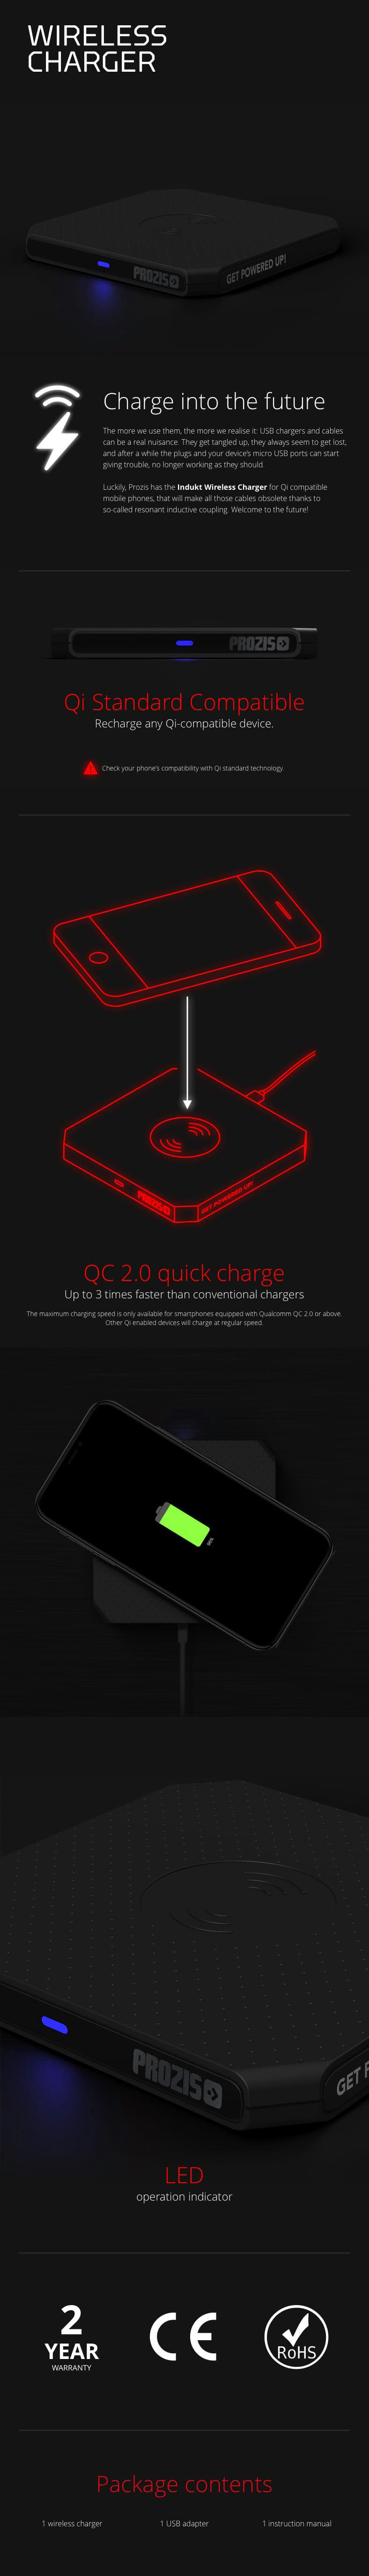 Wireless Charger2 - description